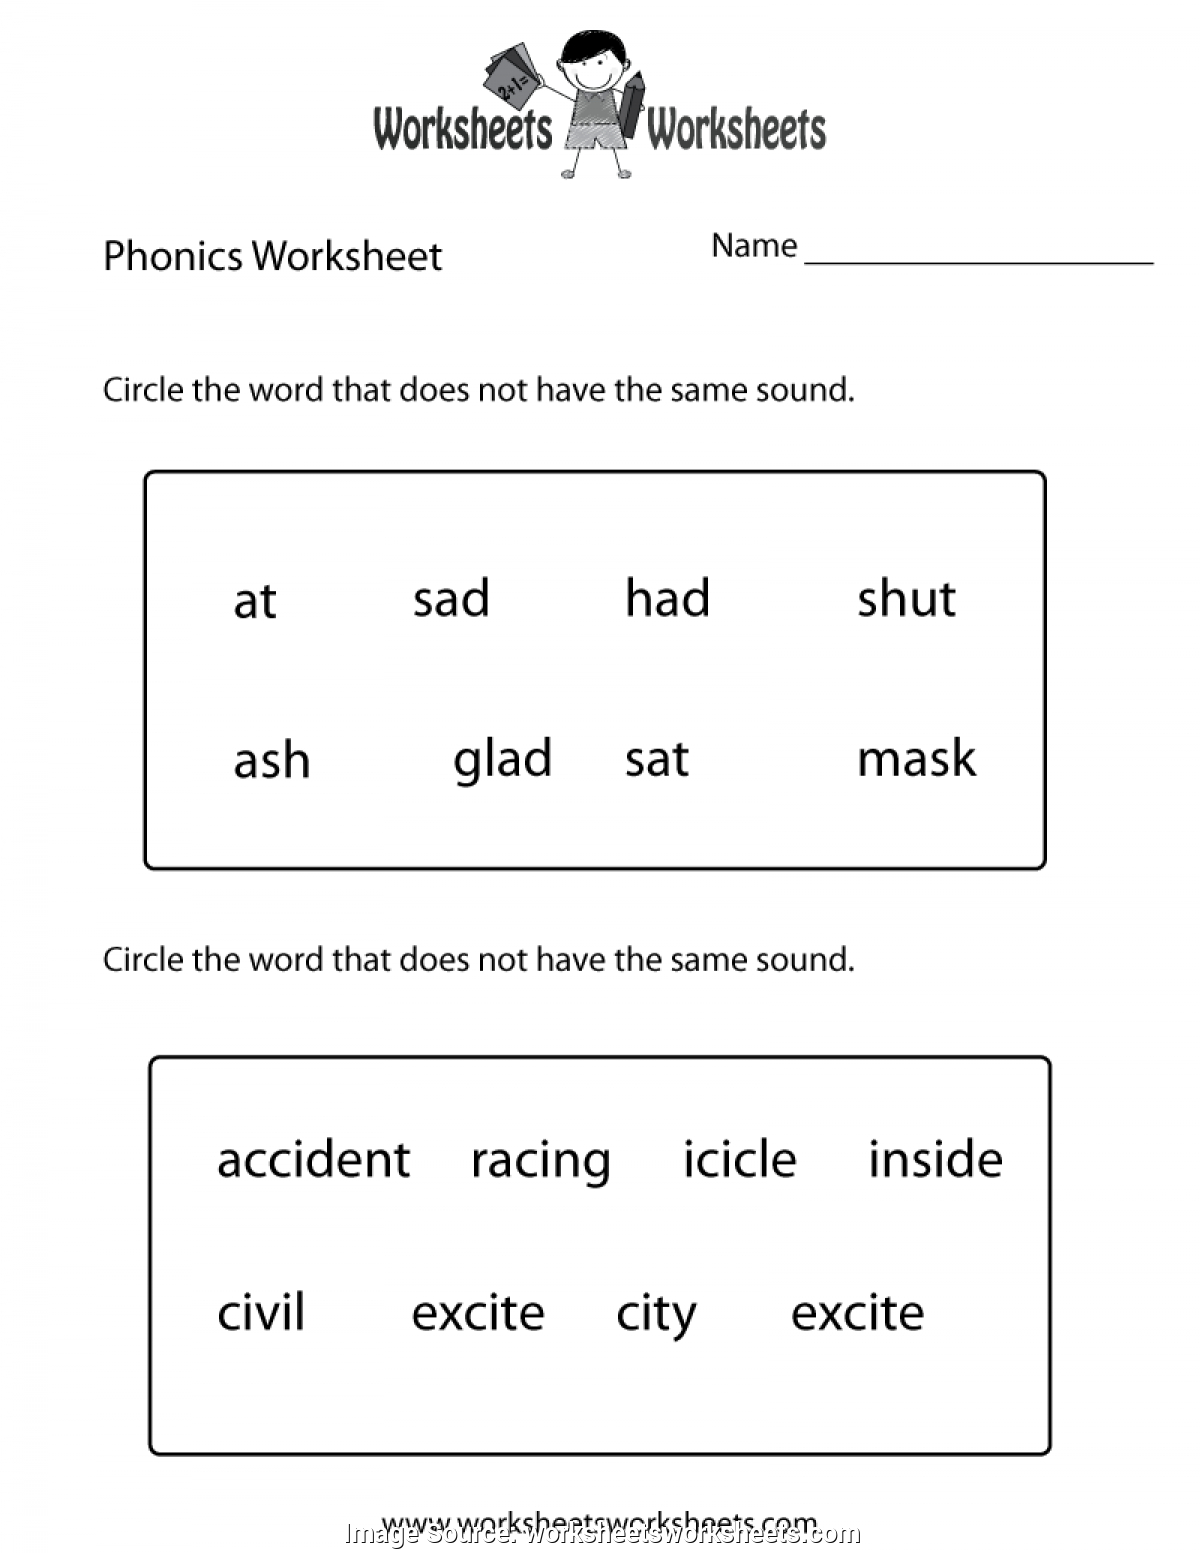 Free Printable First Grade Worksheets To Printable - Math Worksheet - Free Printable First Grade Worksheets